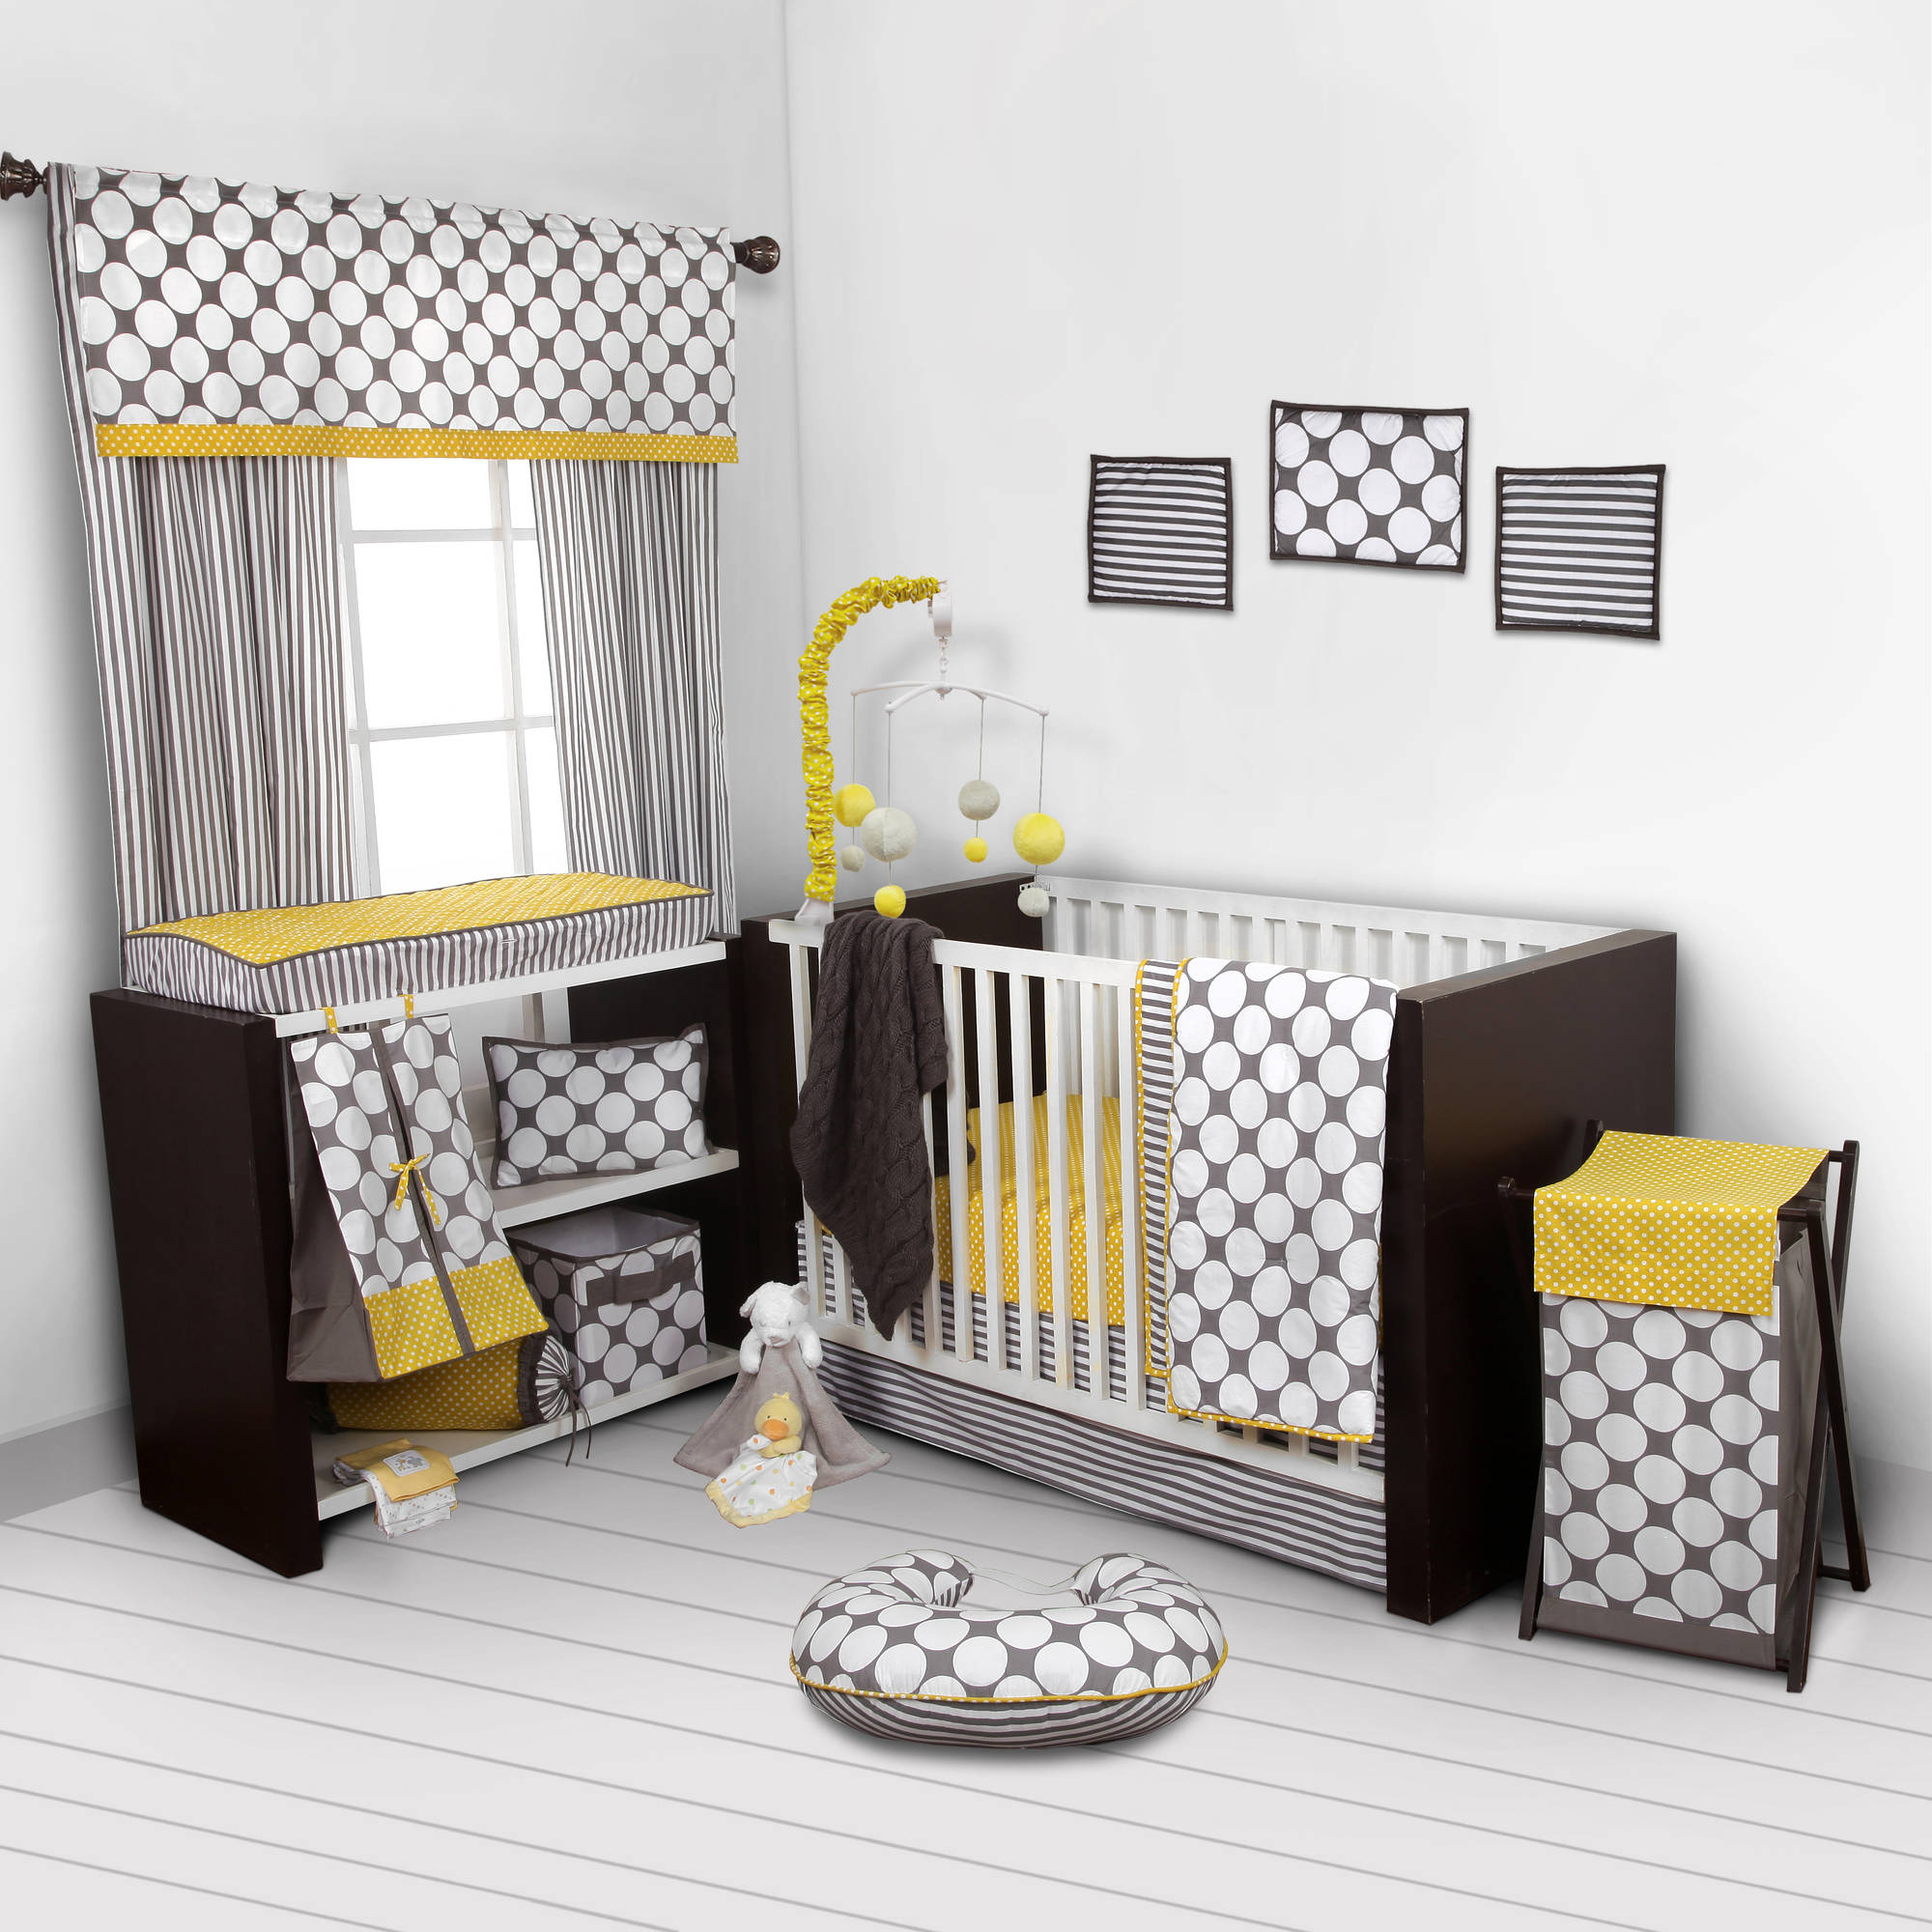 Bacati Dots Pin Stripes Gray Yellow S 10 Piece Nursery In A Bag 100 Cotton Percale Uni Crib Bedding Set With 2 Ed Sheets